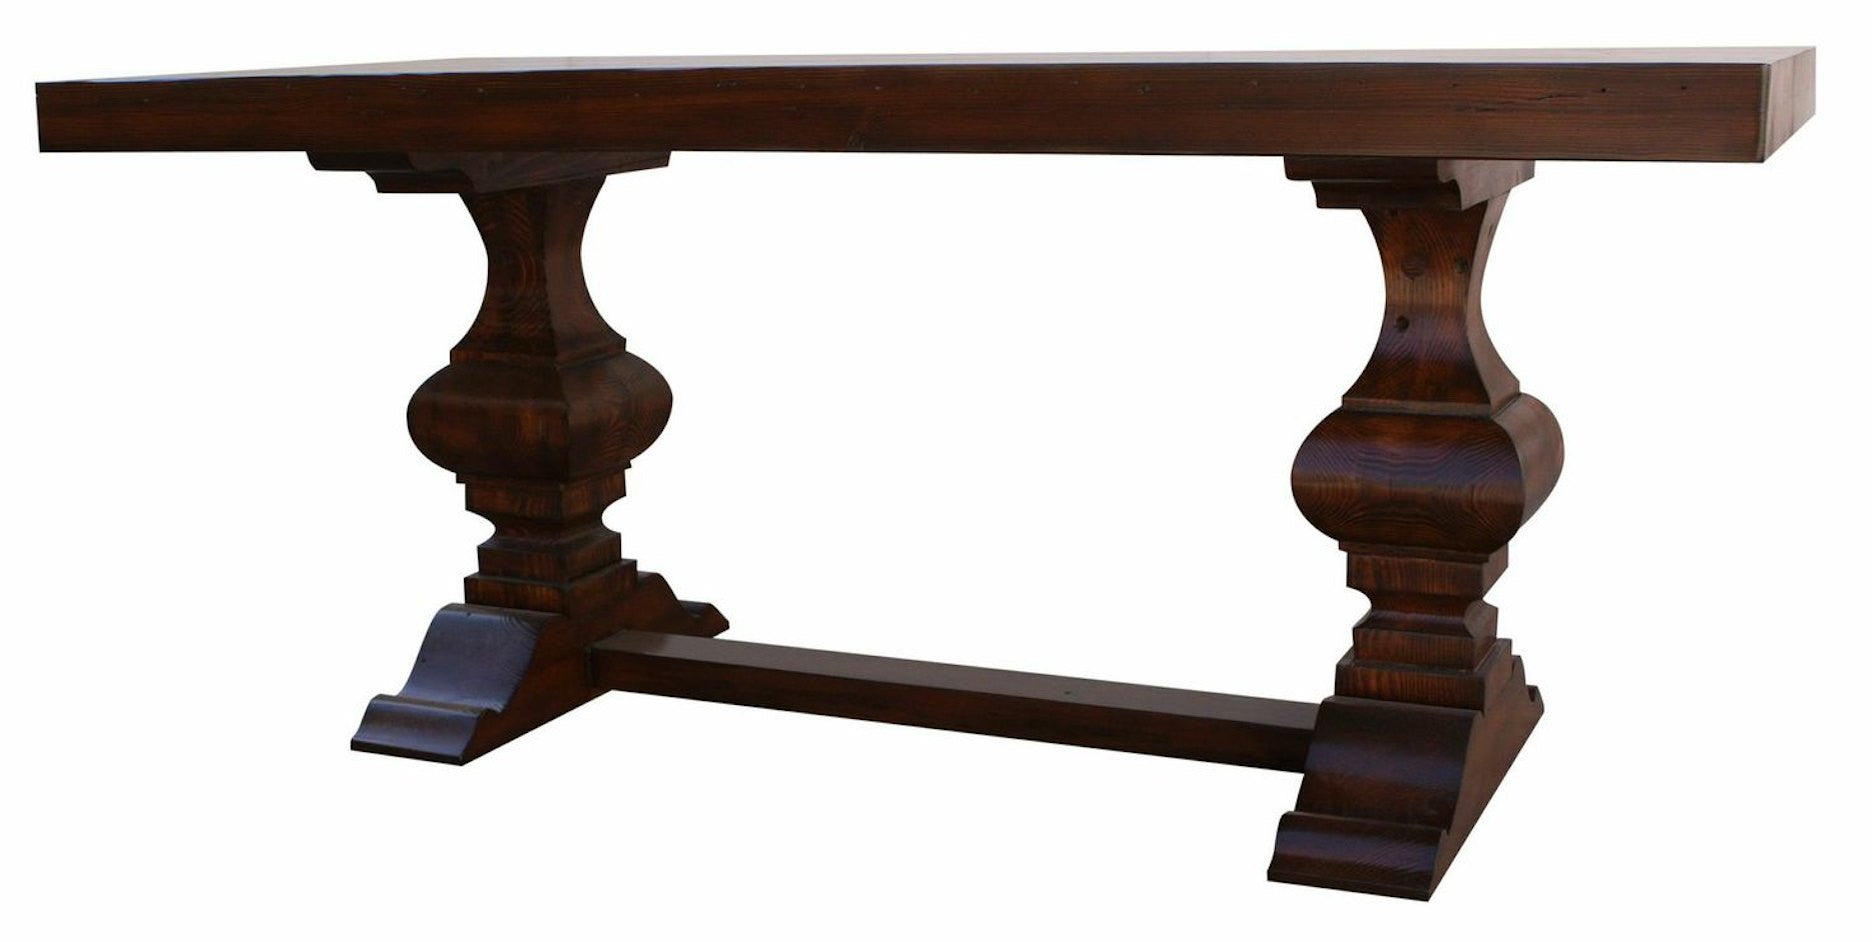 Spanish Colonial Trestle Dining Table – Mortise & Tenon